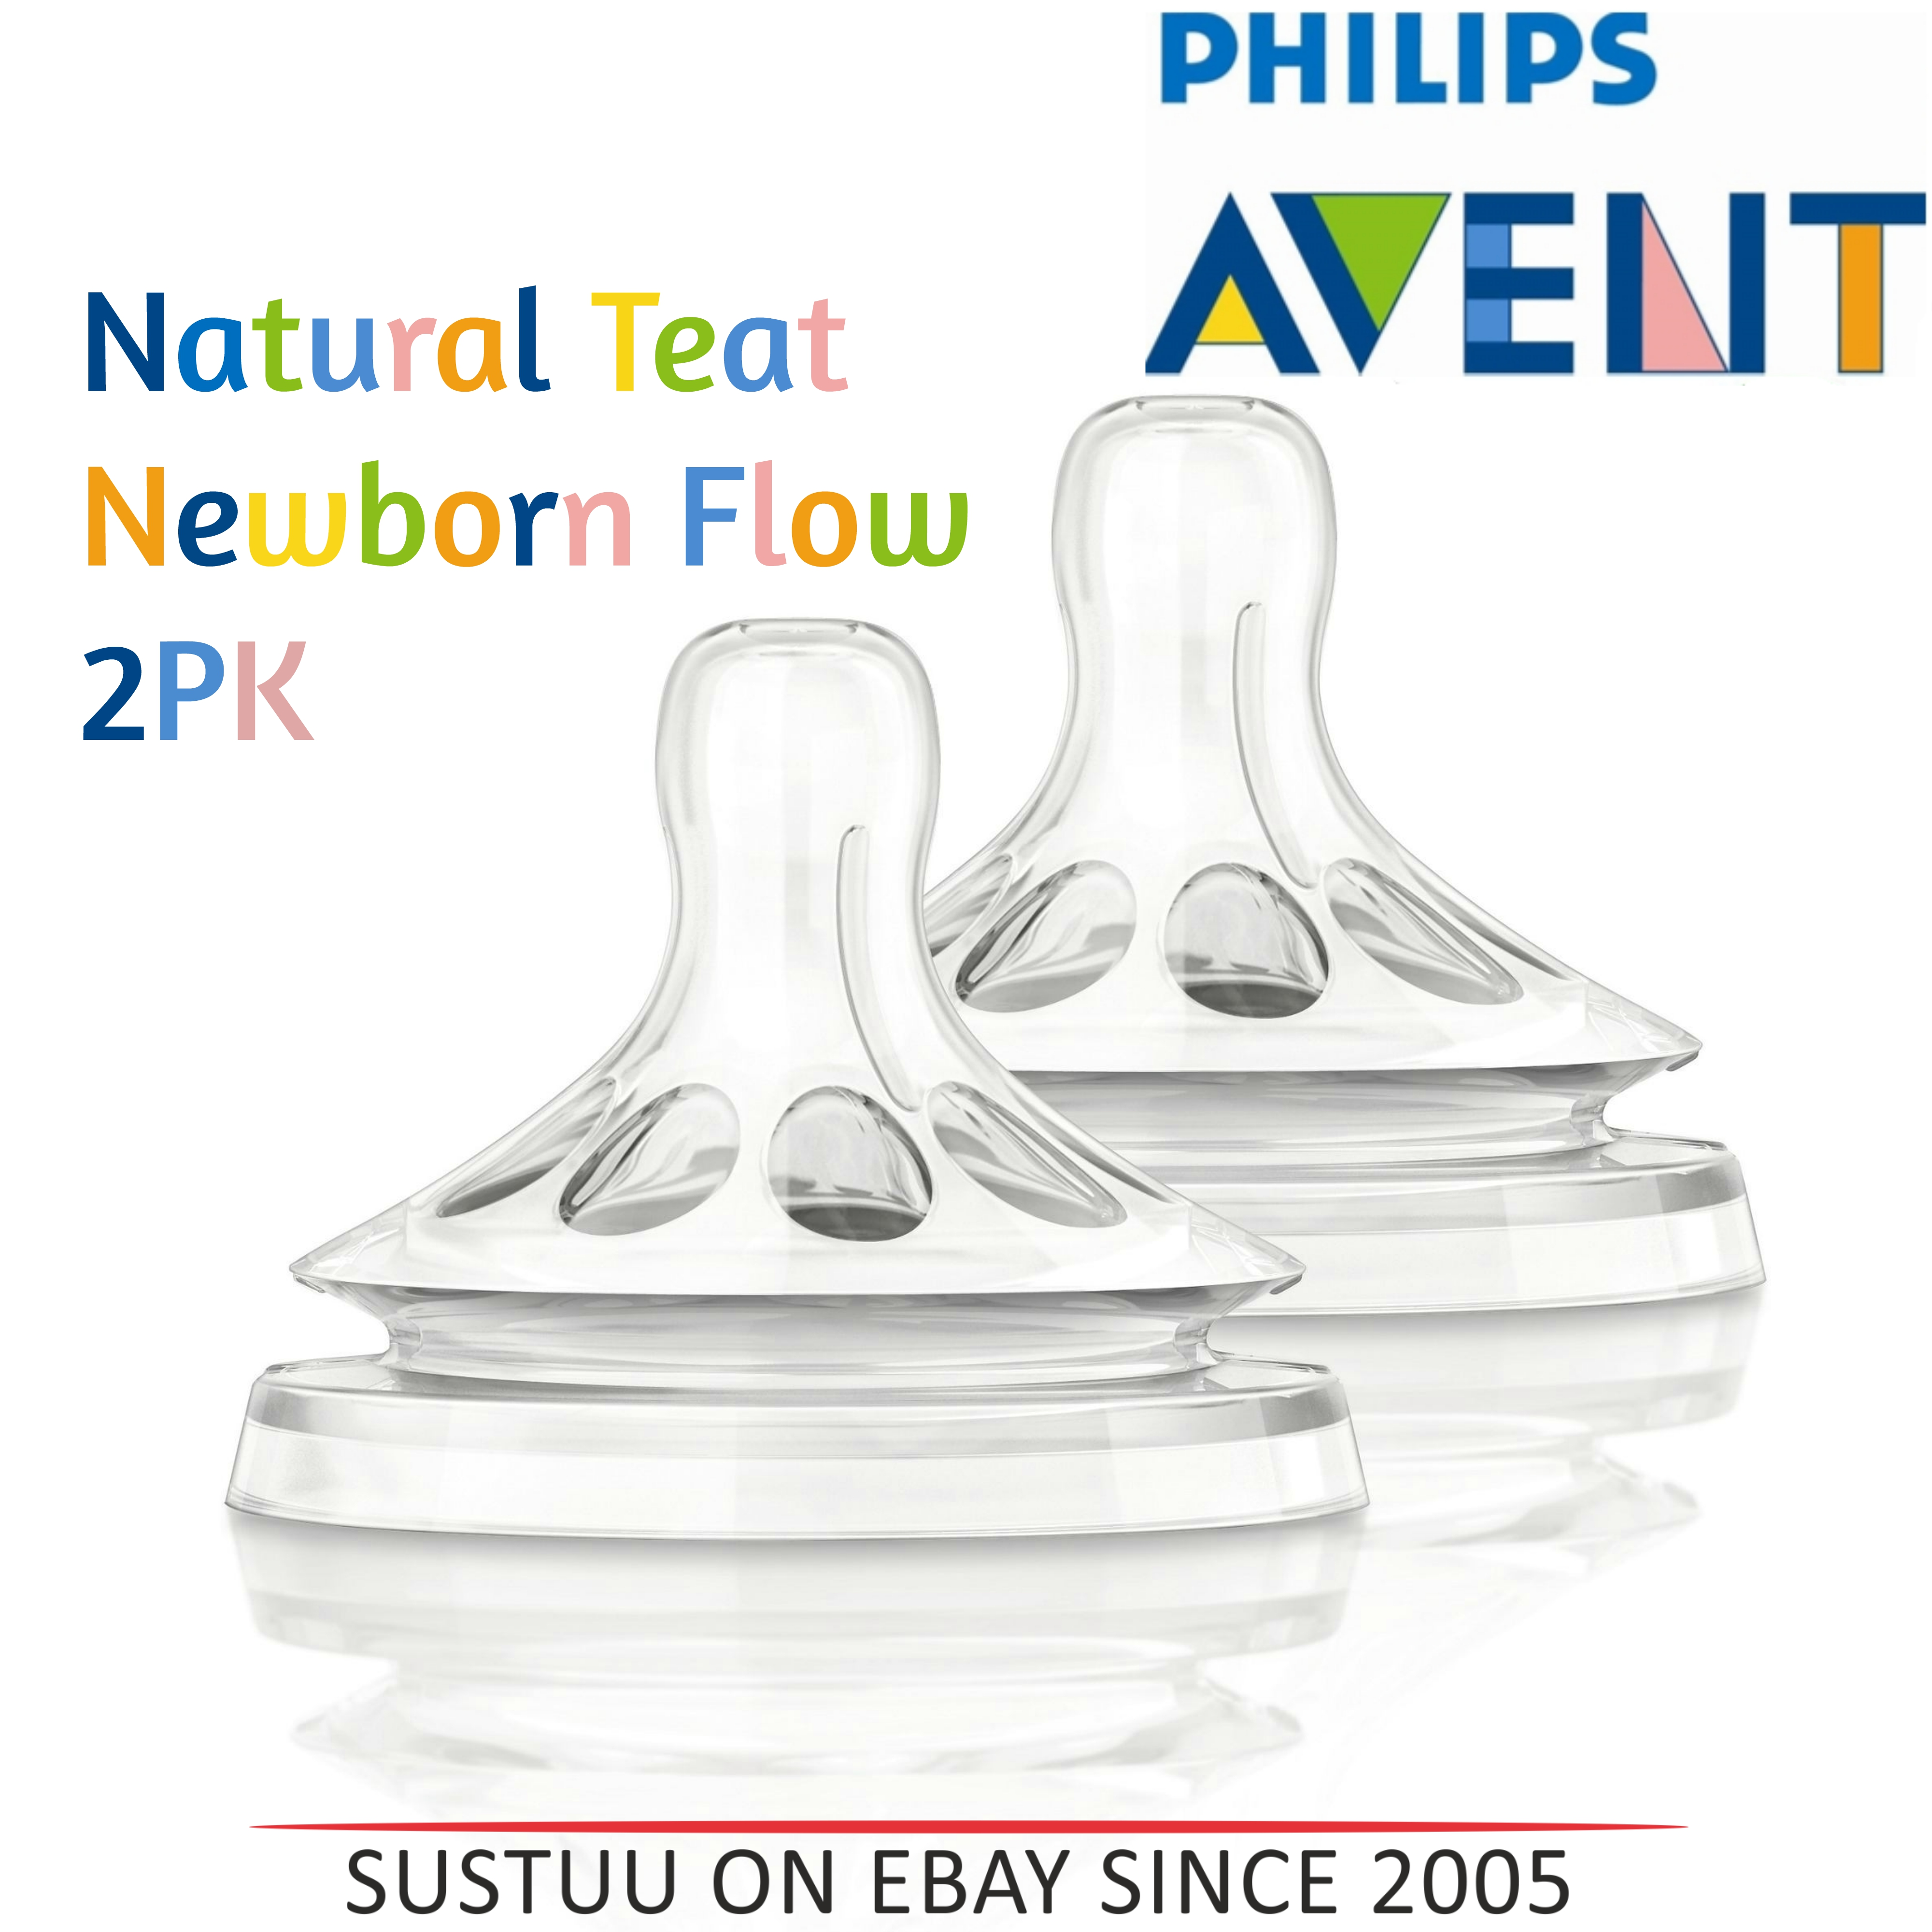 Philips Avent Natural Teat Newborn Baby Flow|BPA Free|Soft & Flexible|Anti Colic